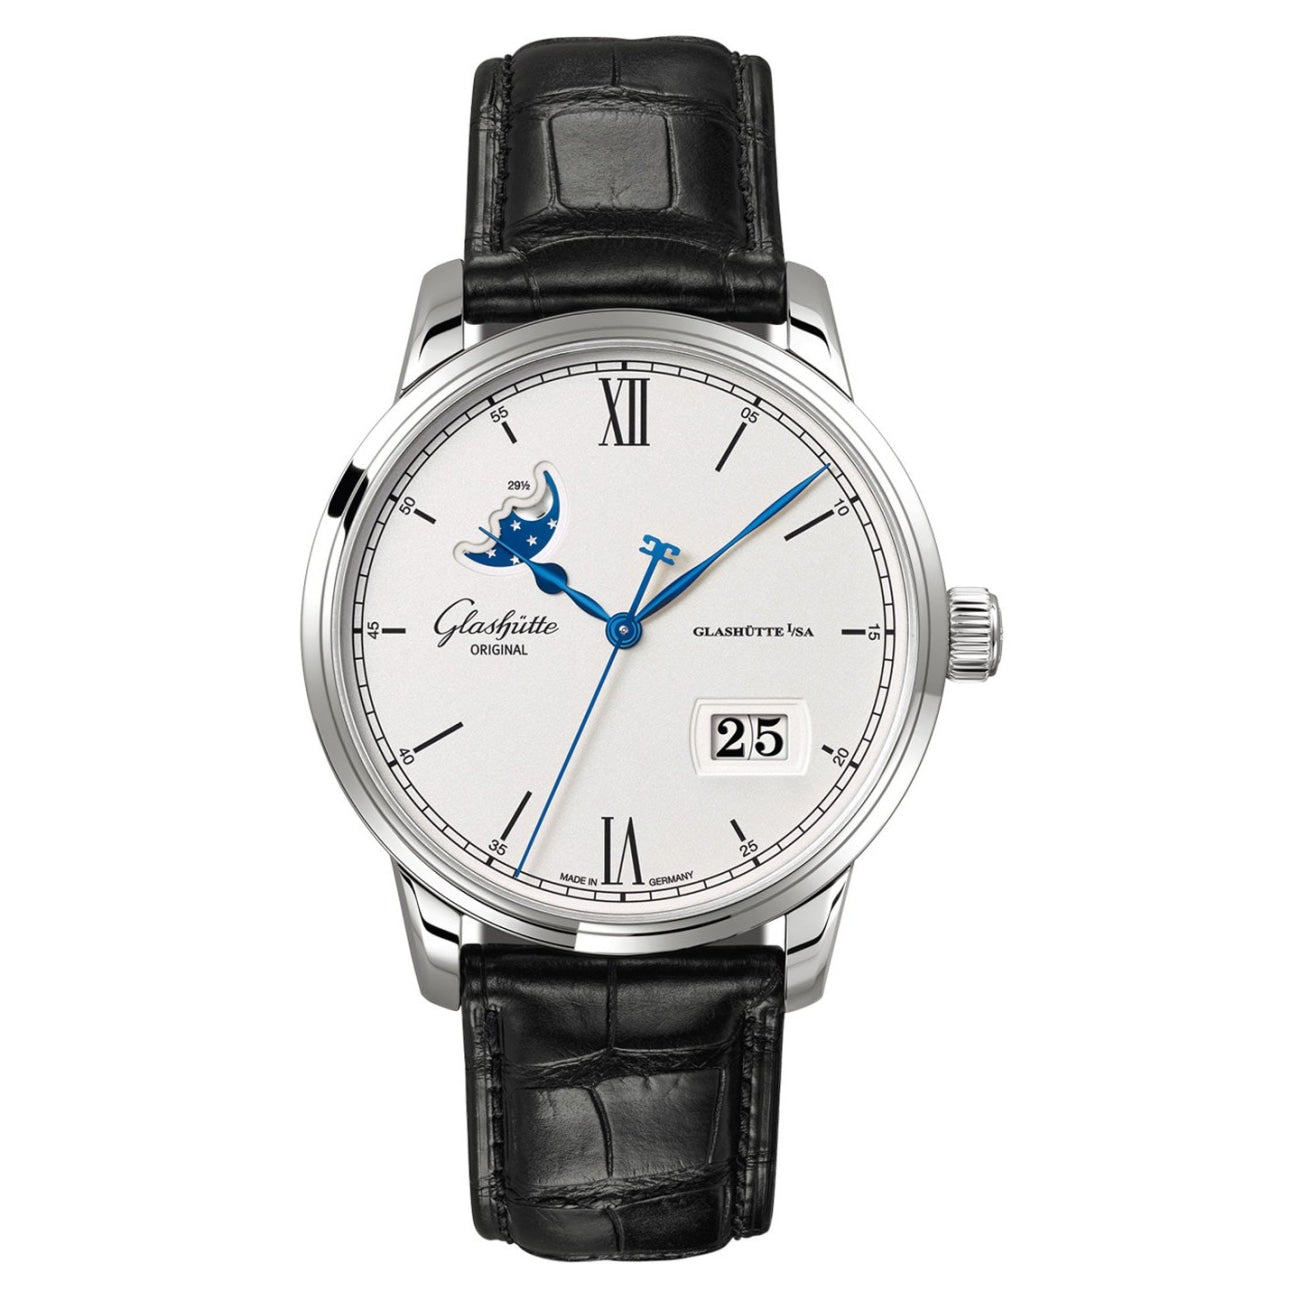 Glashütte Original Watches - Senator Excellence Panorama Date Moon Phase | Manfredi Jewels